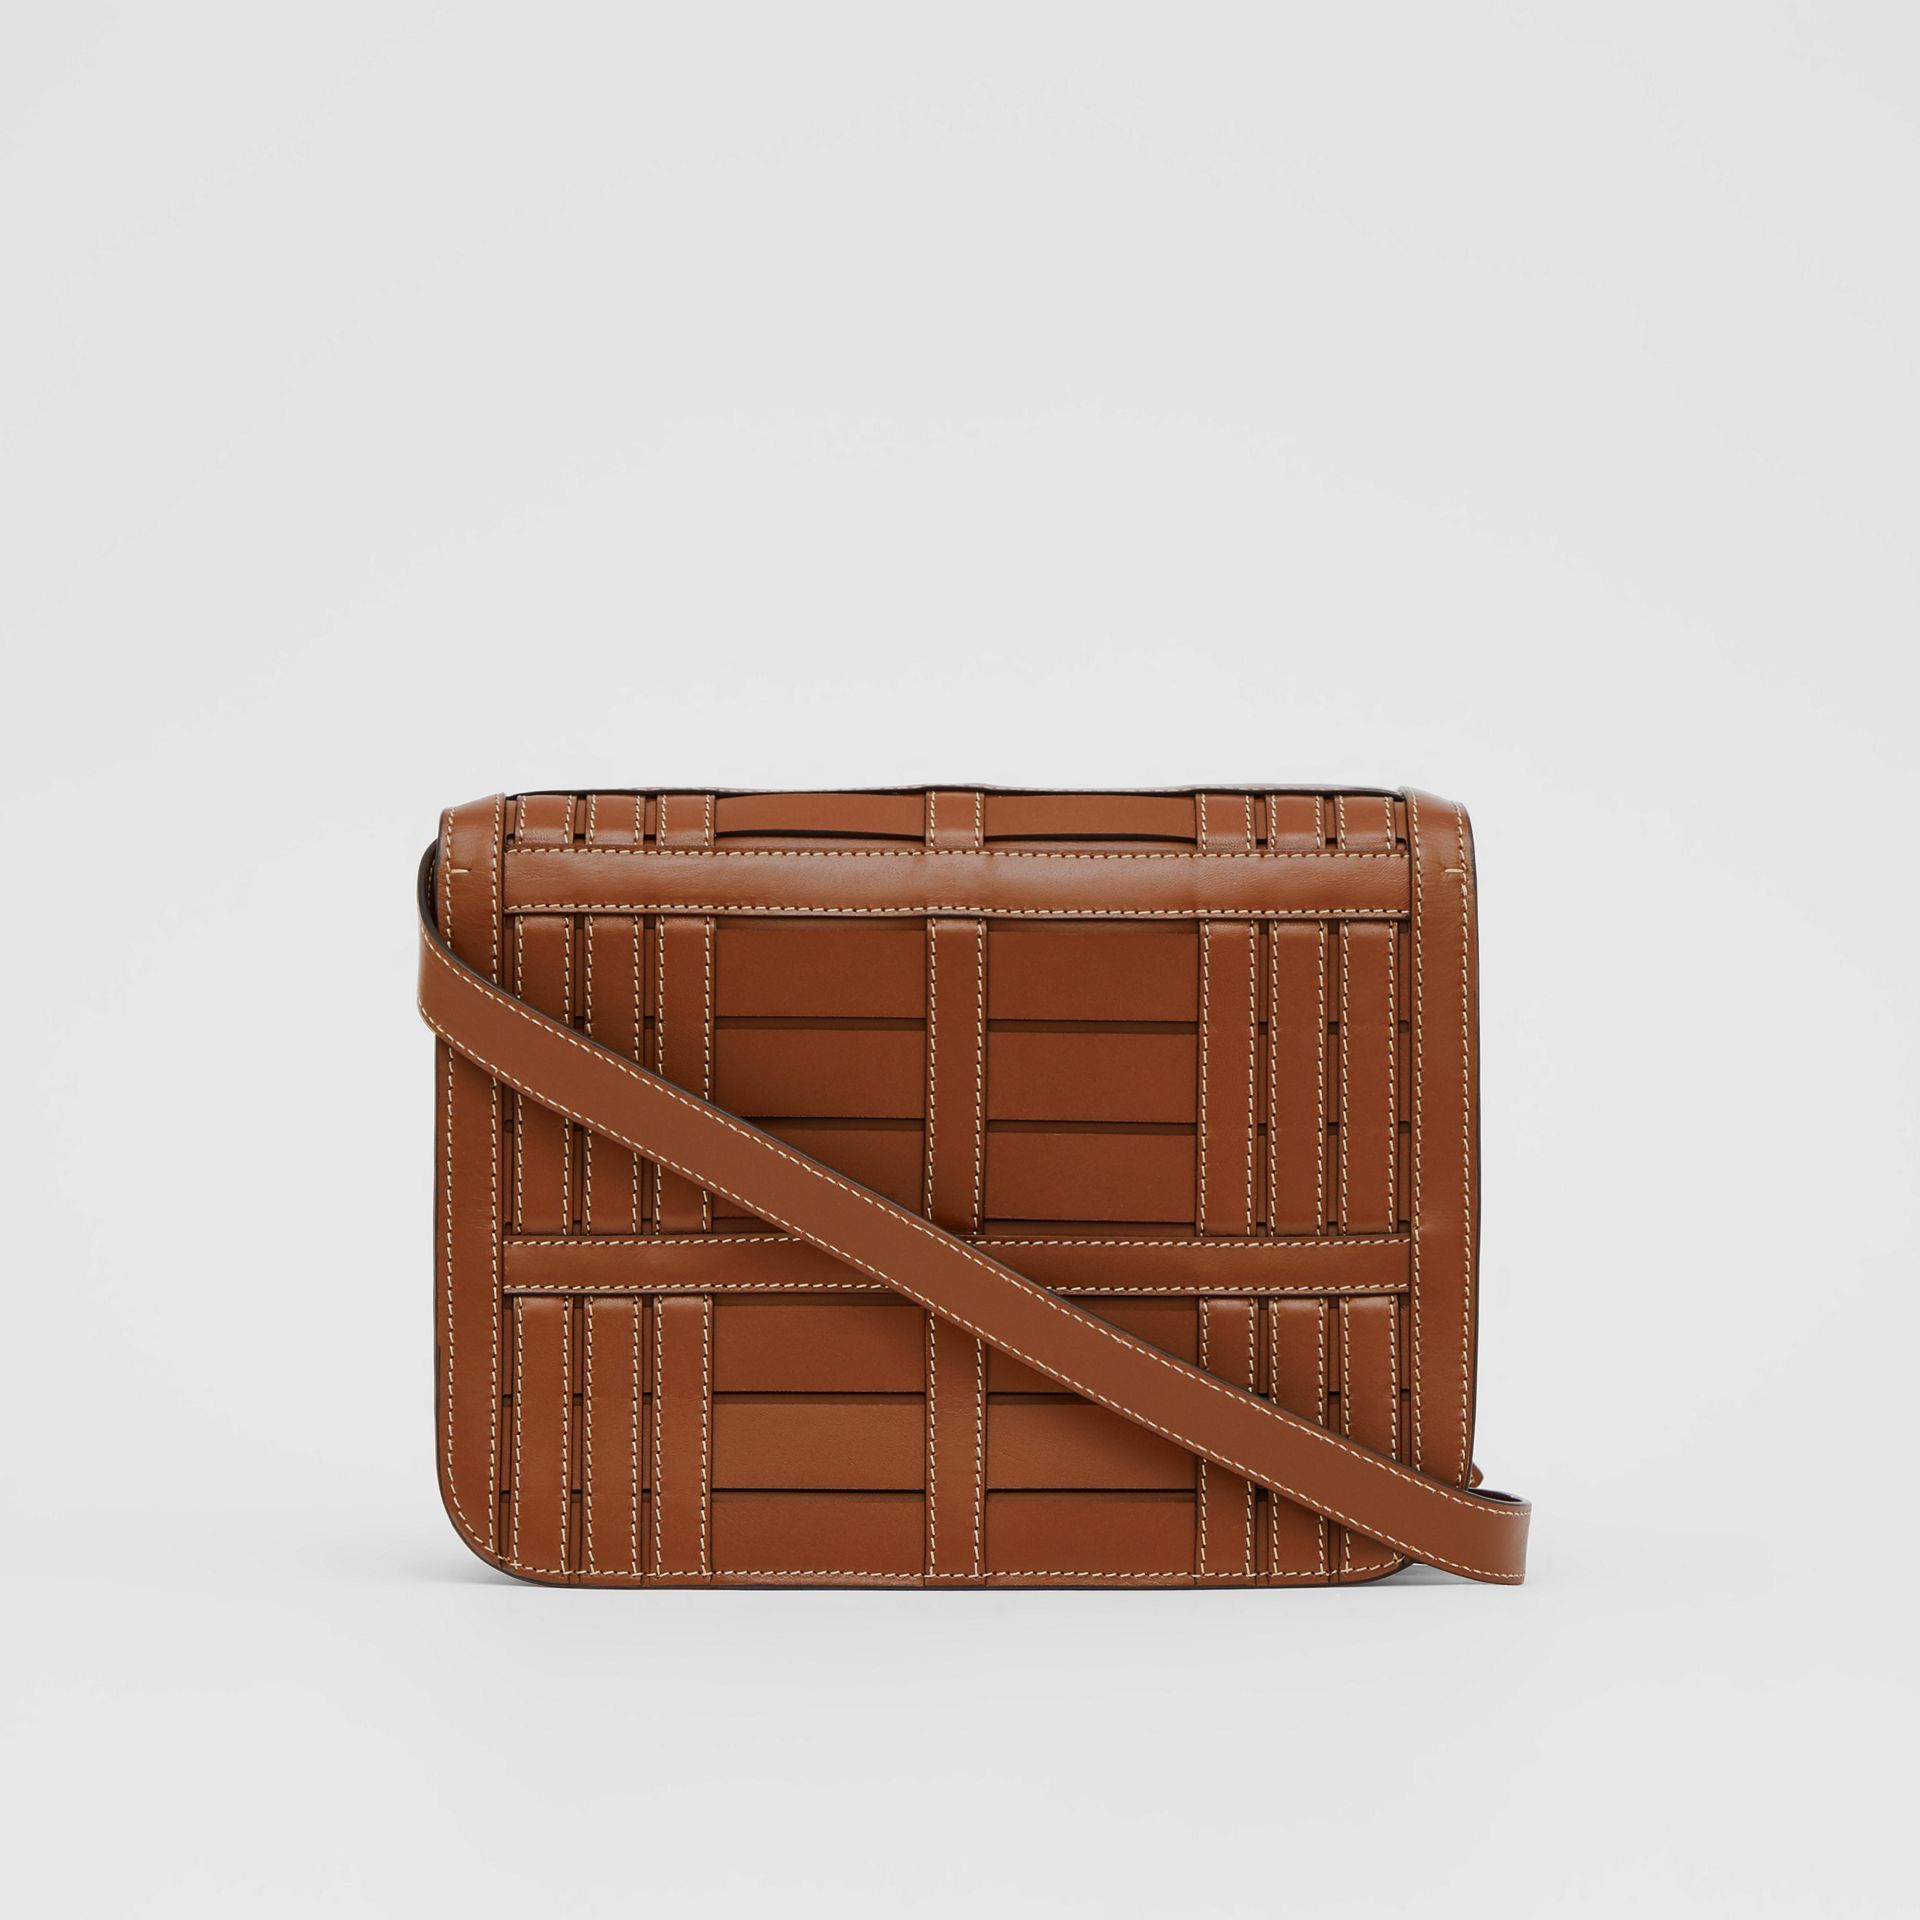 Medium Woven Leather TB Bag in Tan - Women | Burberry - gallery image 7